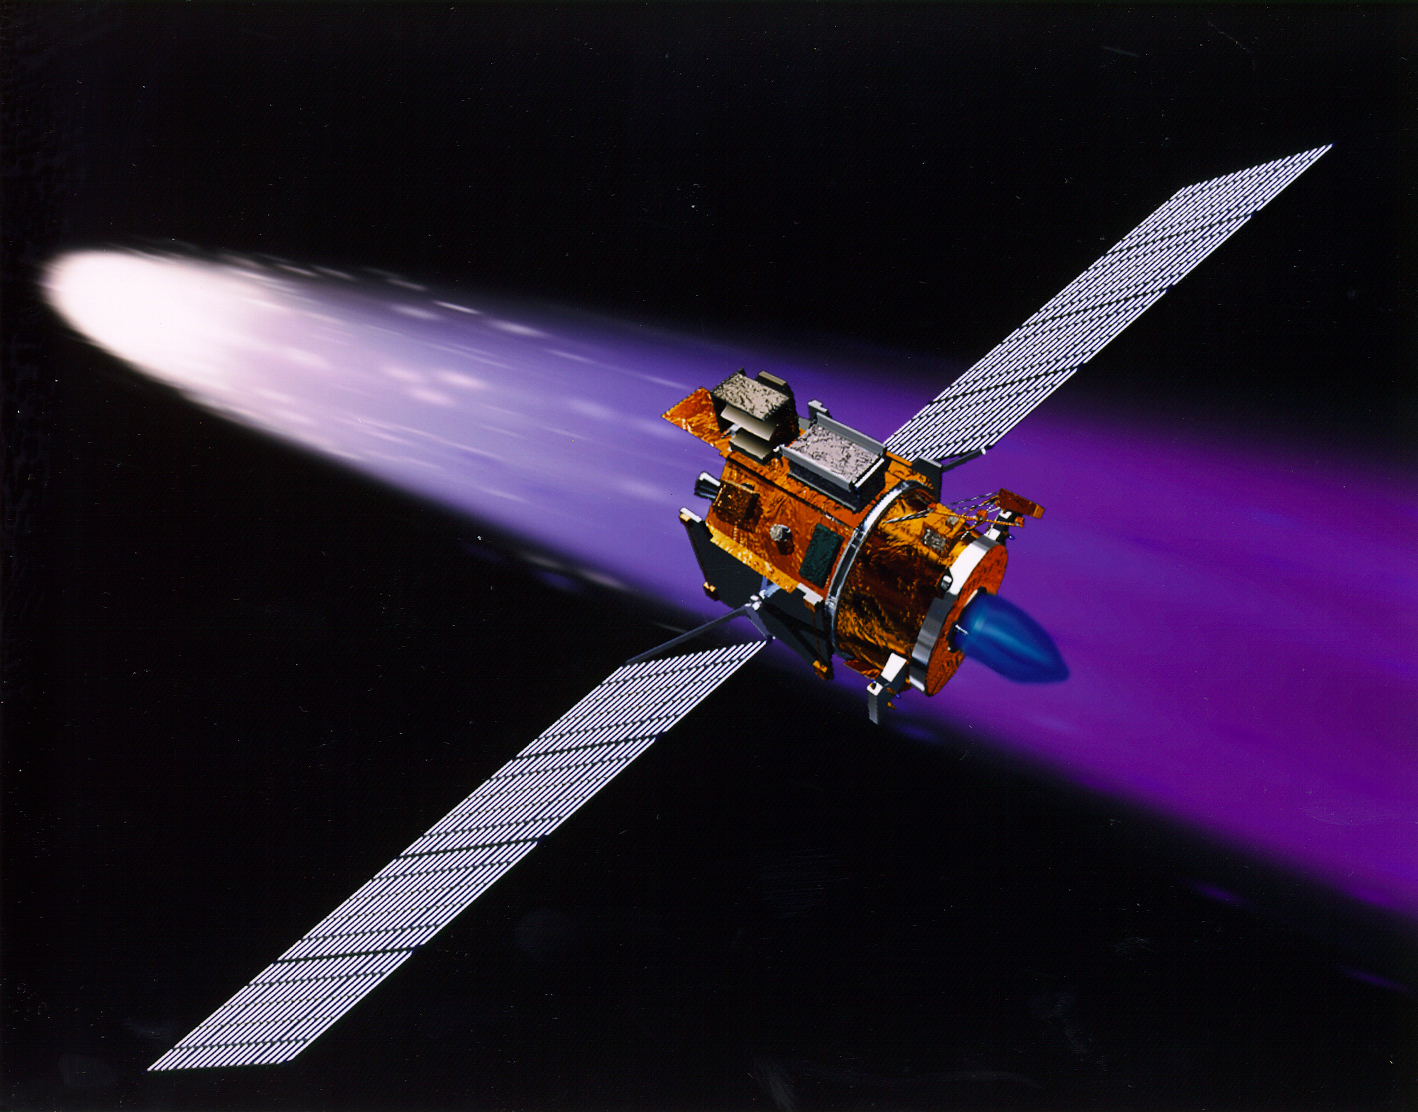 File:Deep Space 1 using its ion engine.jpg - Wikipedia